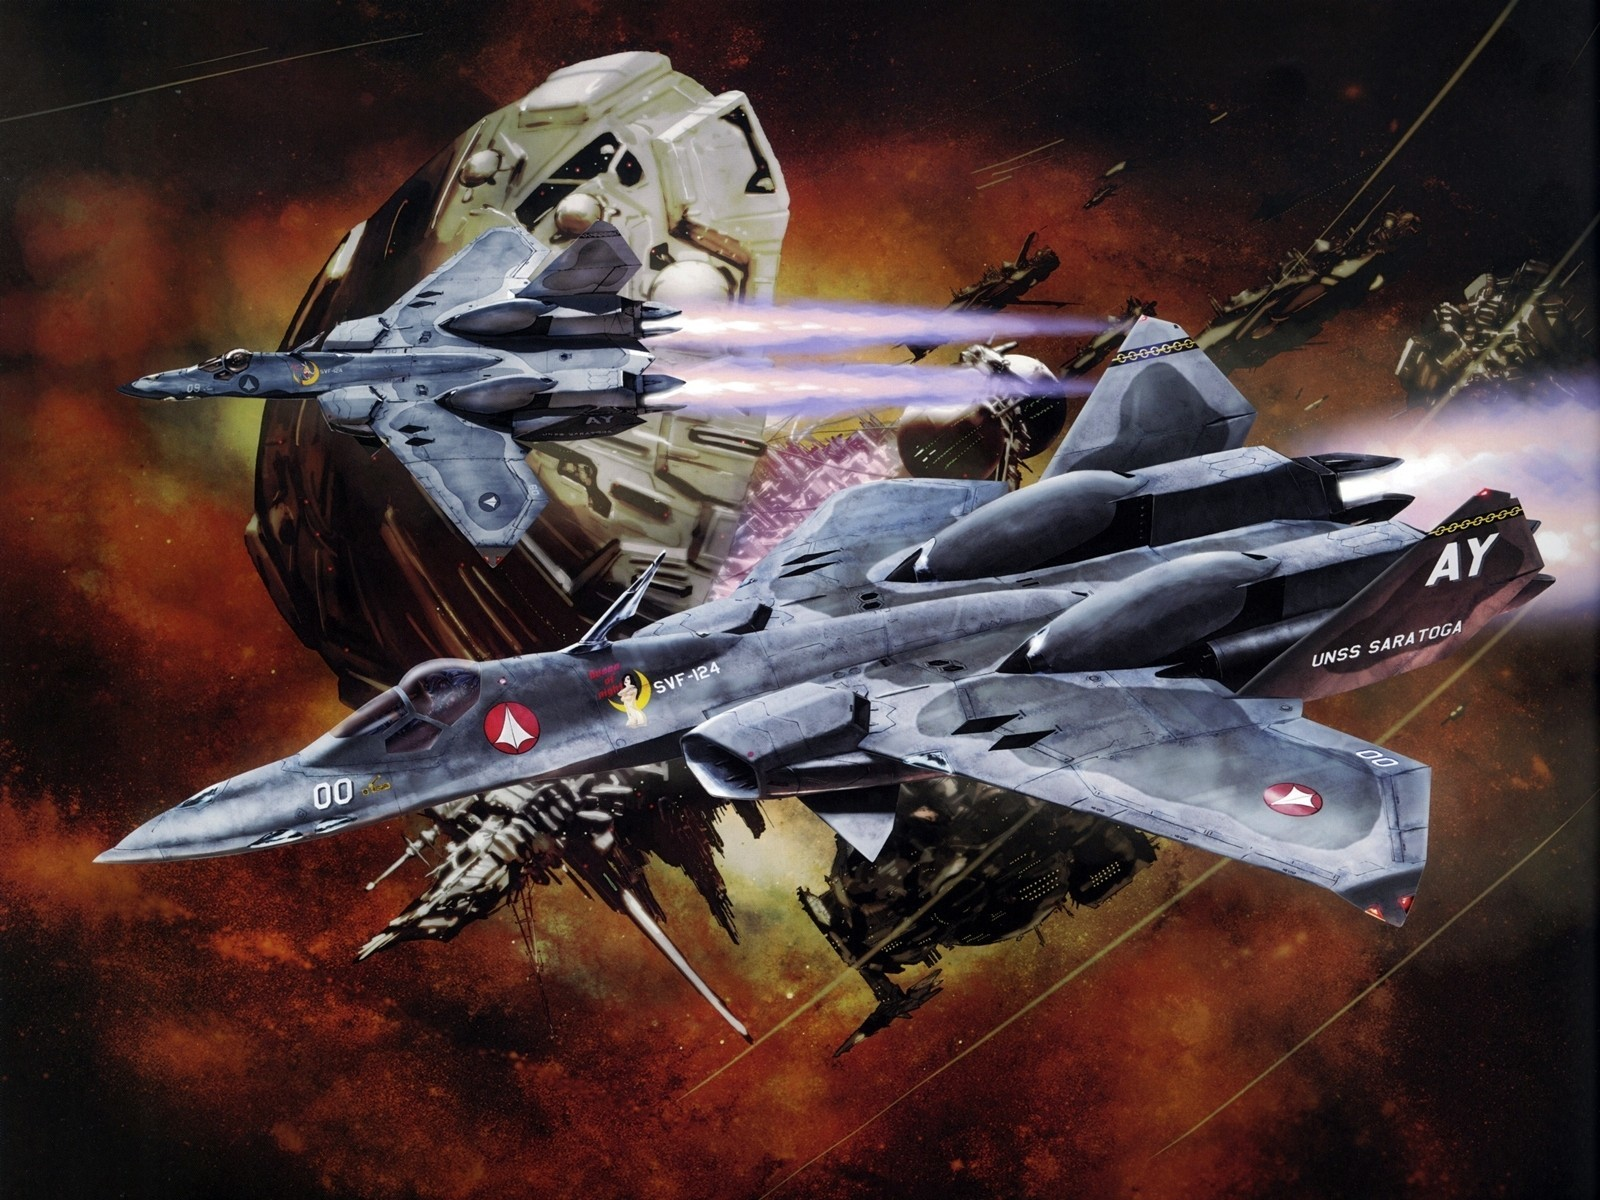 macross mecha planes Space HD Wallpaper